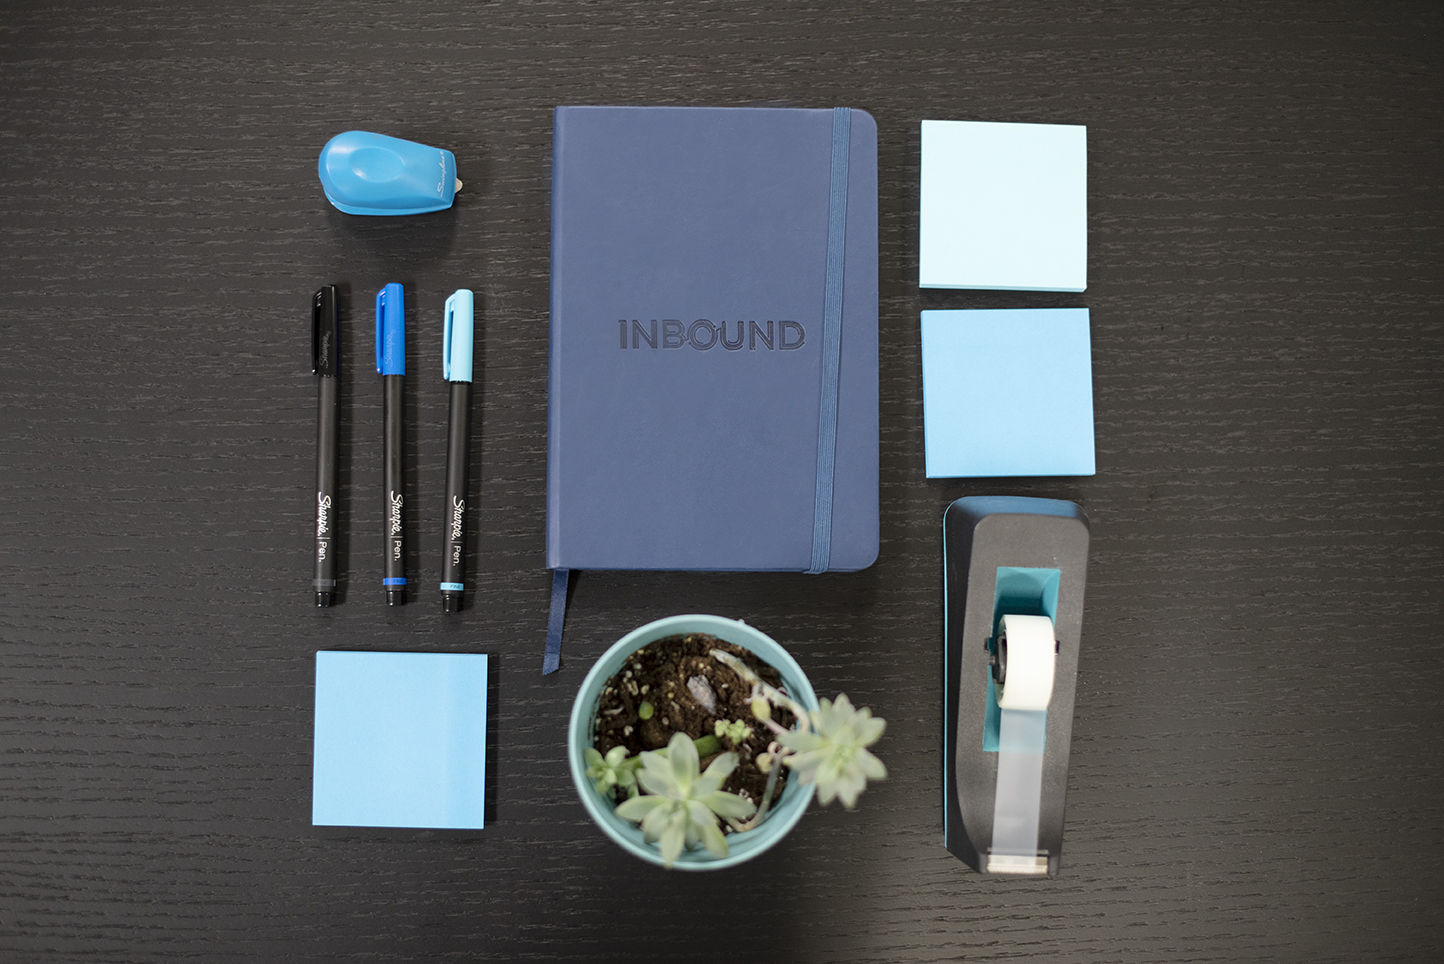 Inbound Collateral (Marker, Stapler, Notepads, Notebook, Plants, and Tape)